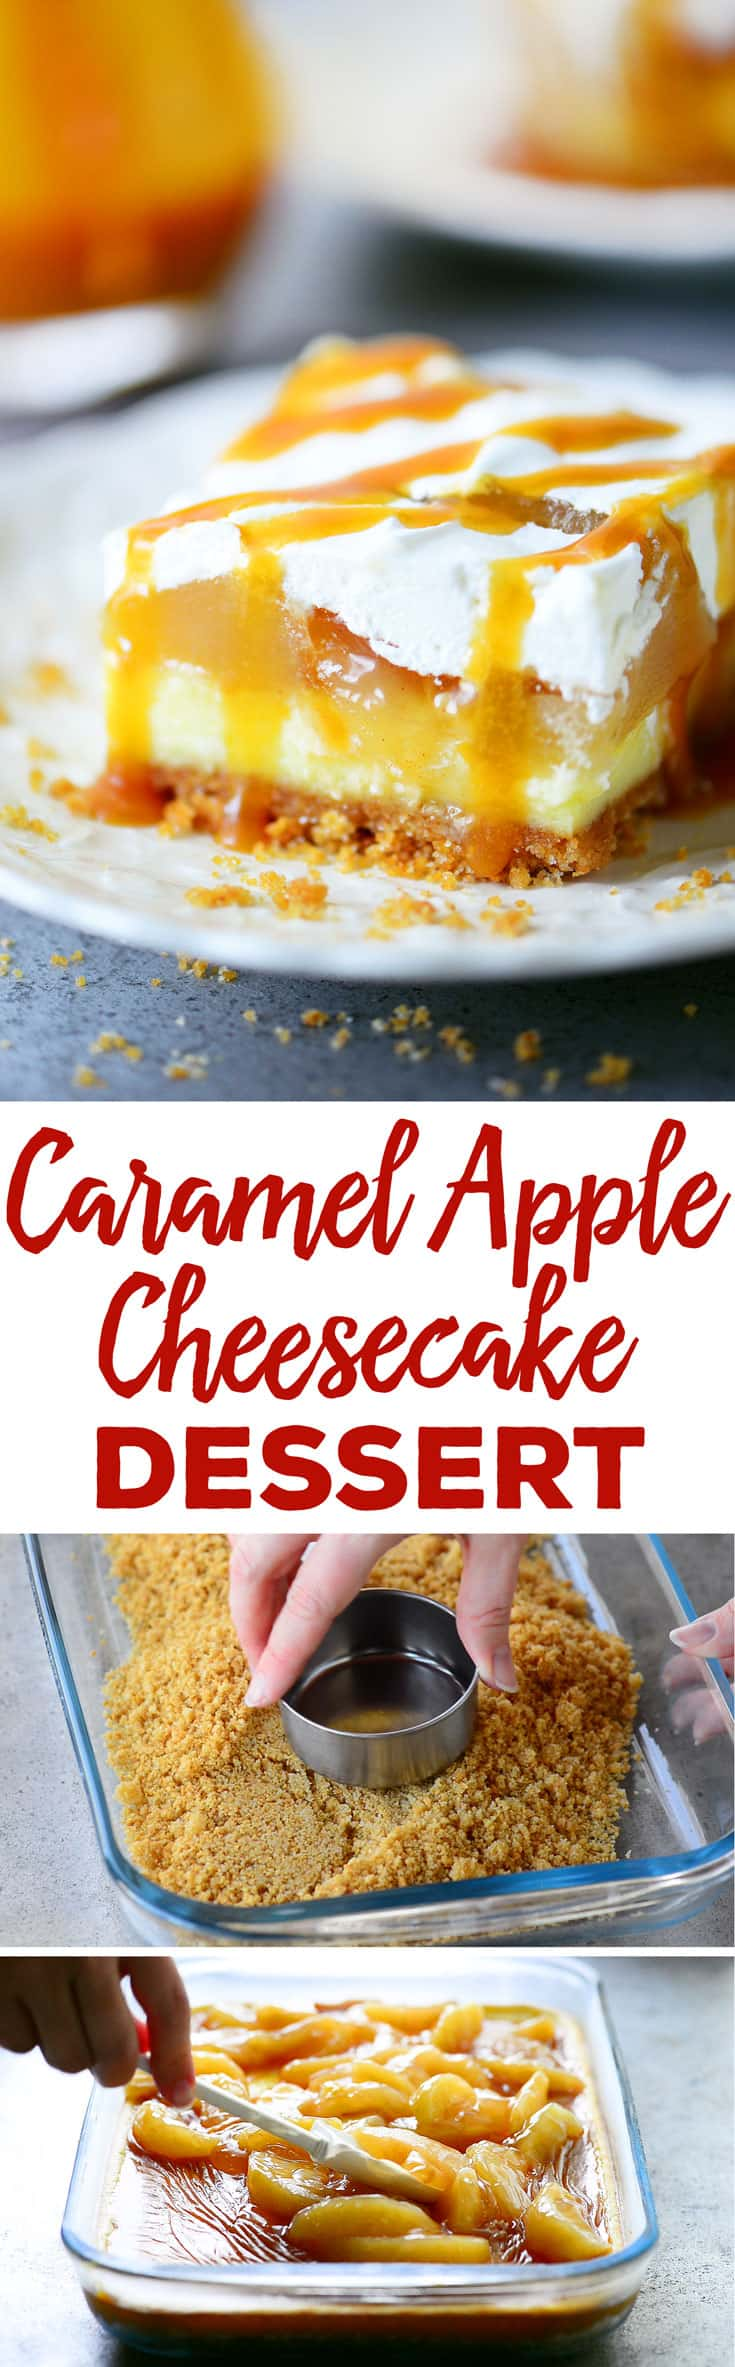 This Caramel Apple Cheesecake Dessert recipe is perfect for fall with a cheesecake layer topped with apple pie filling, caramel sauce, and whipped cream.